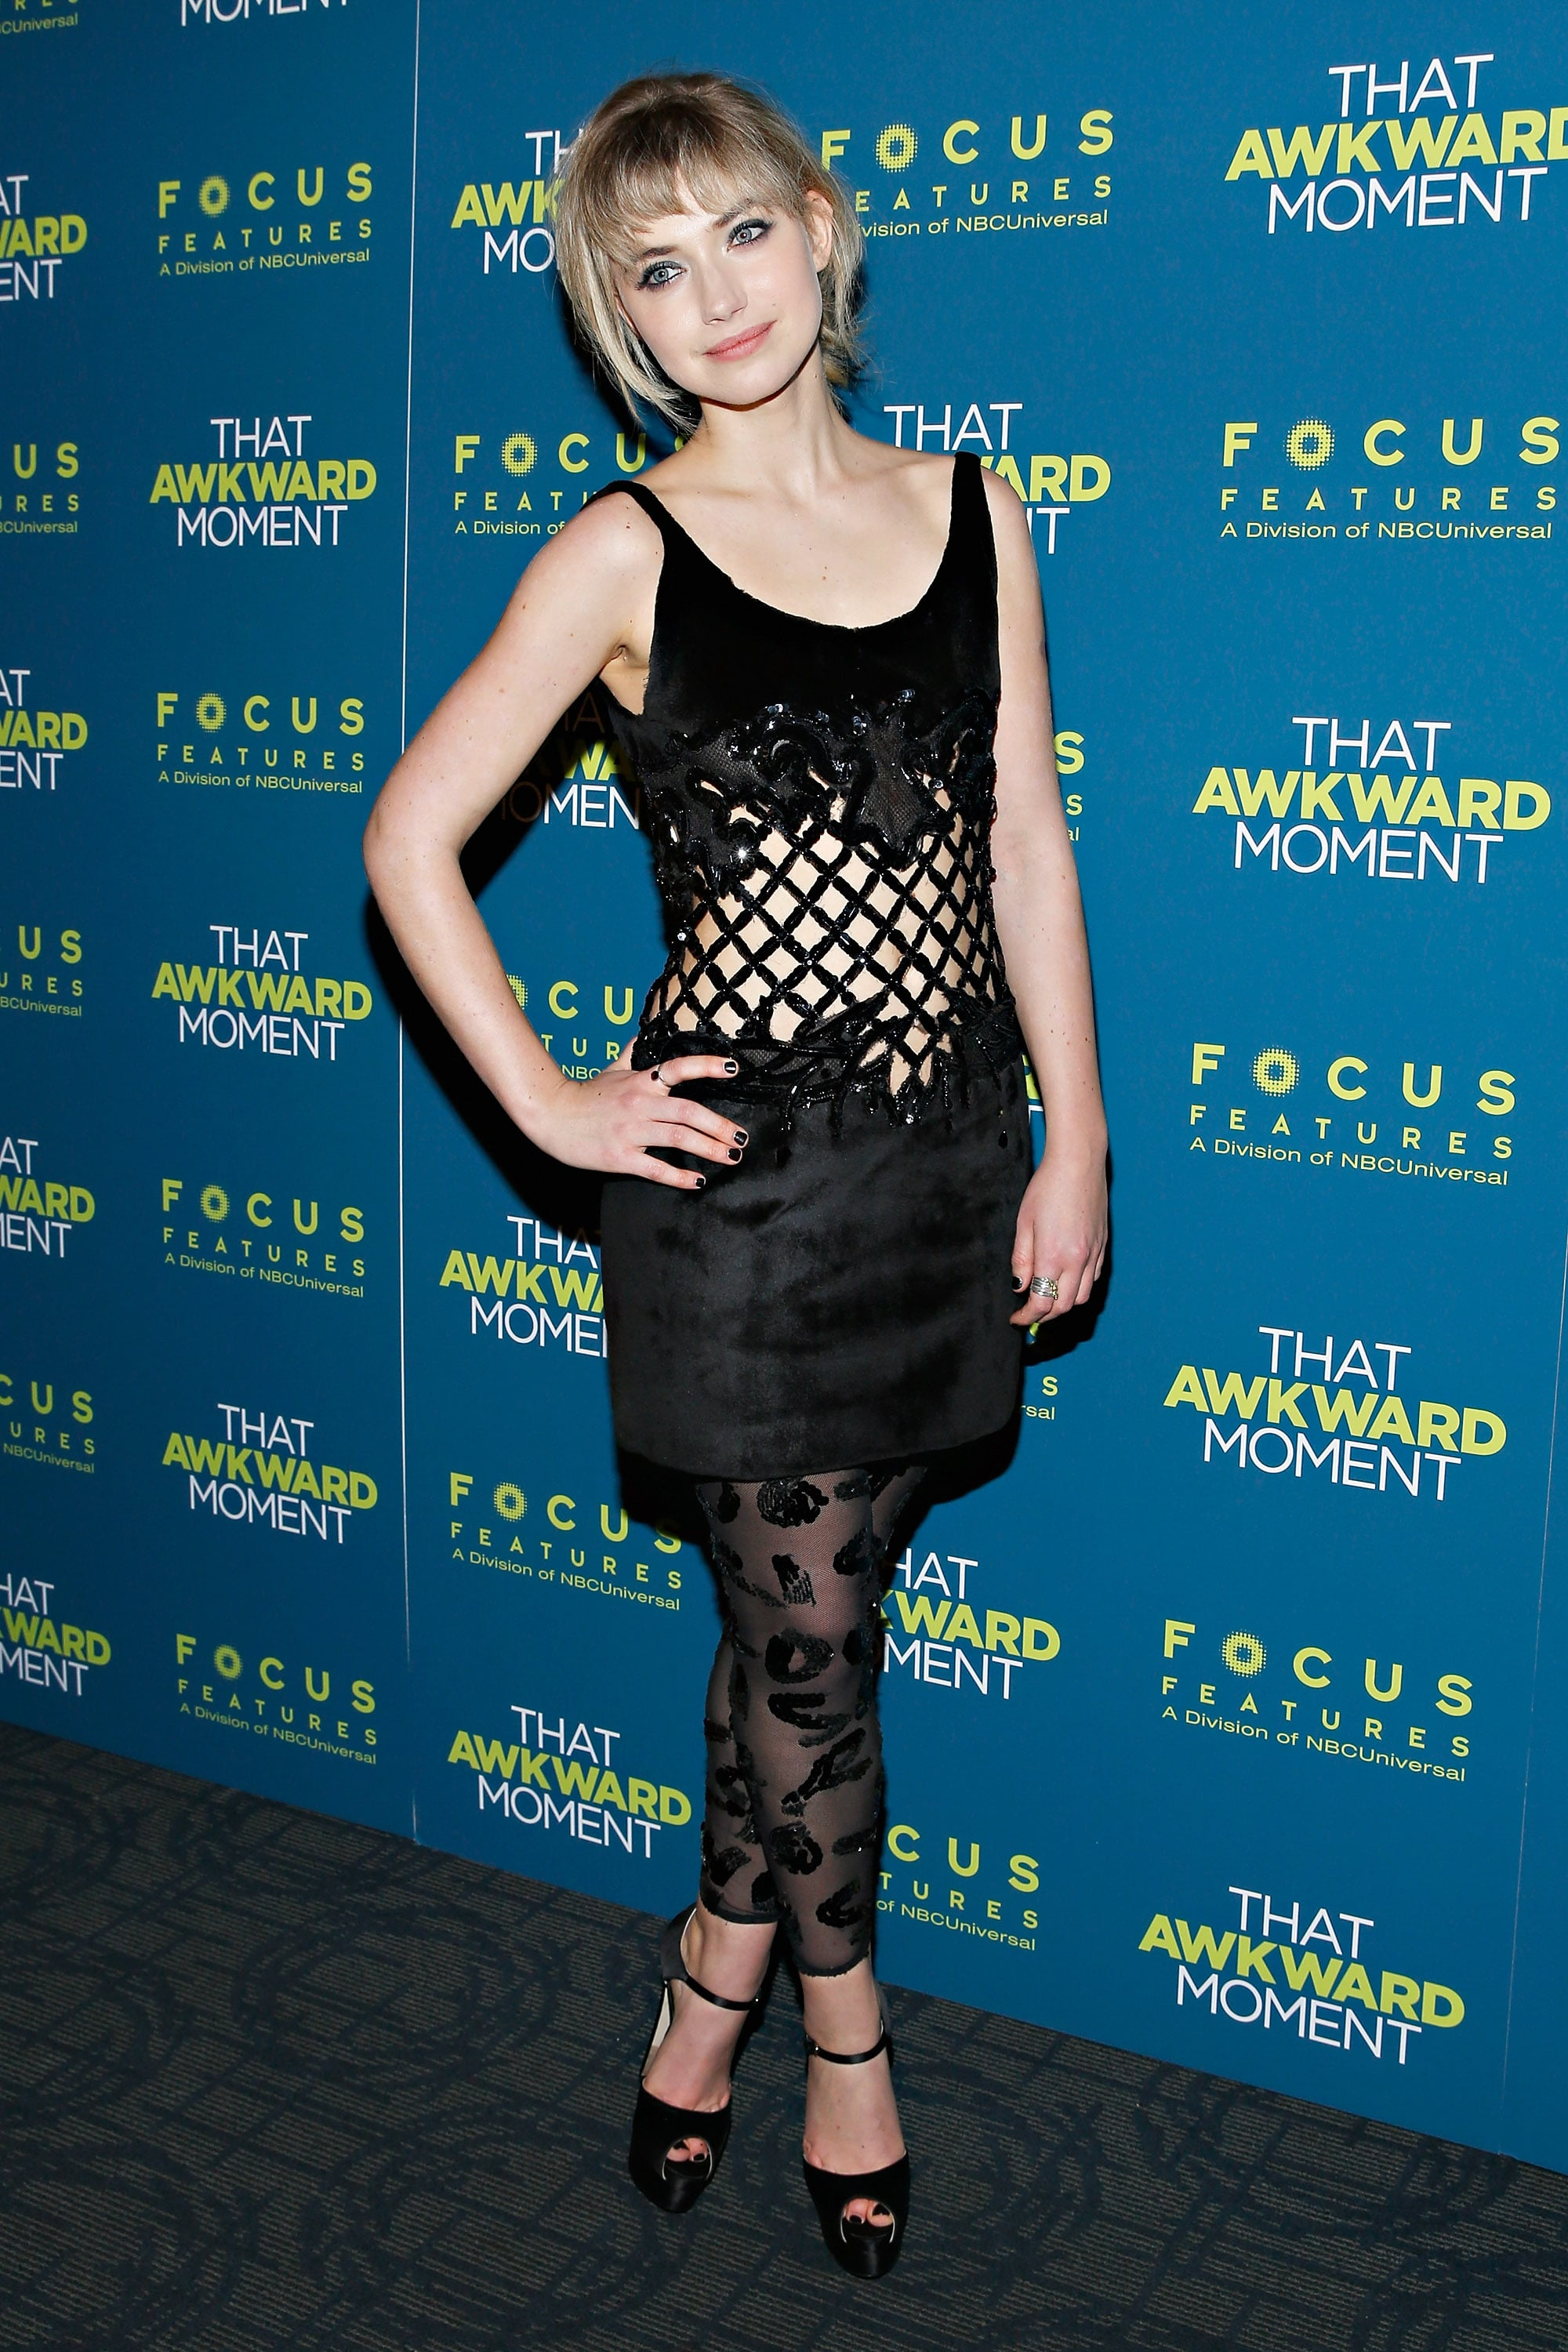 Imogen Poots at the Screening of That Awkward Moment